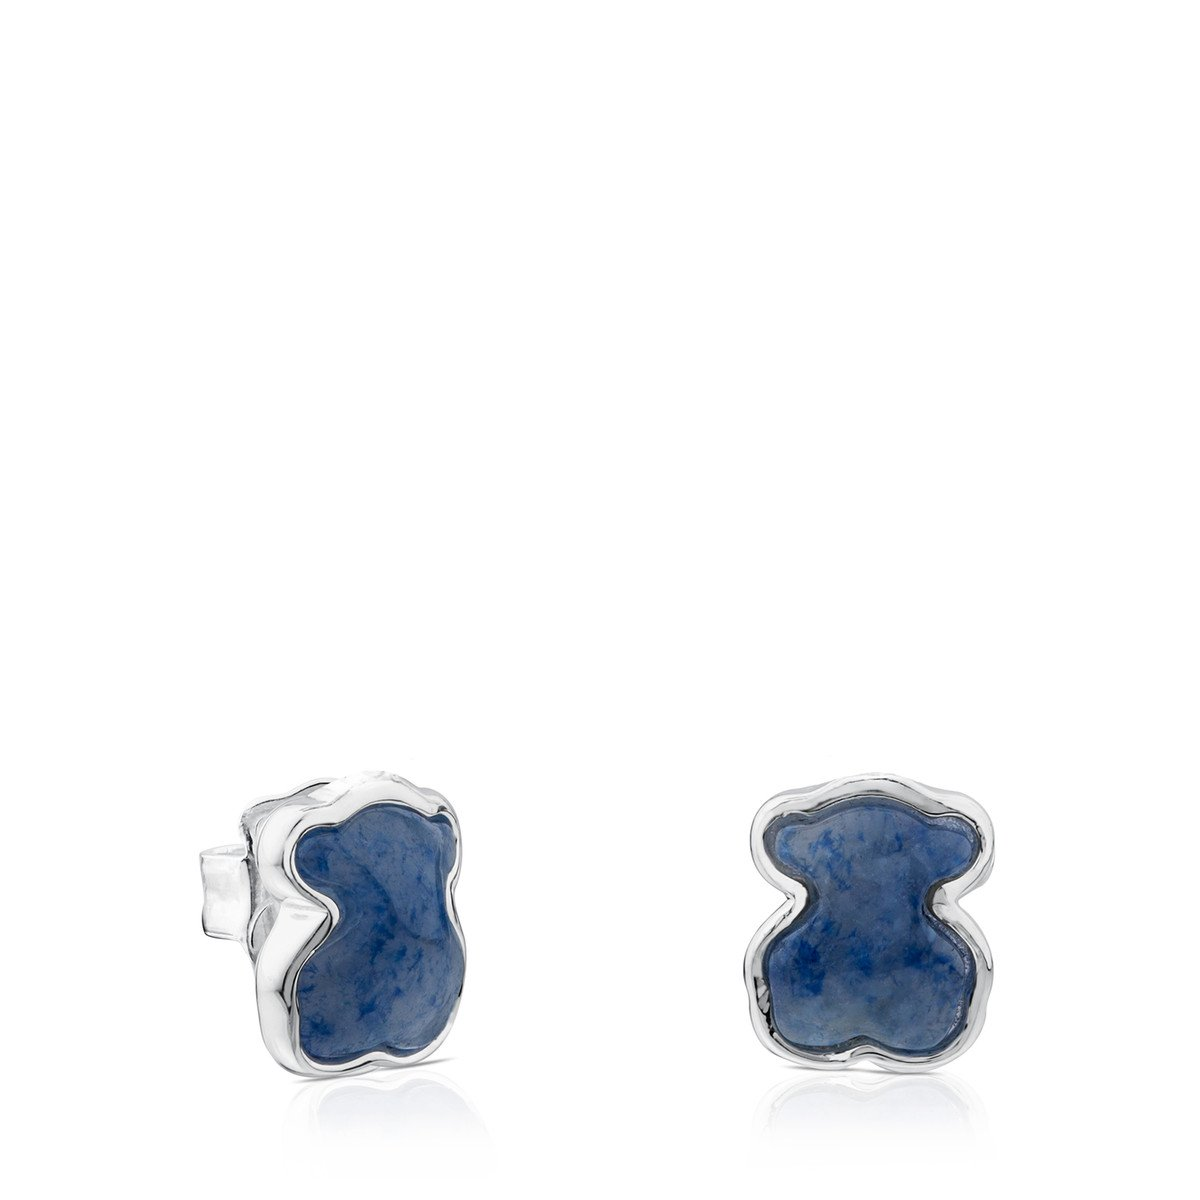 Silver New Color Earrings with Quartz with Dumortierite